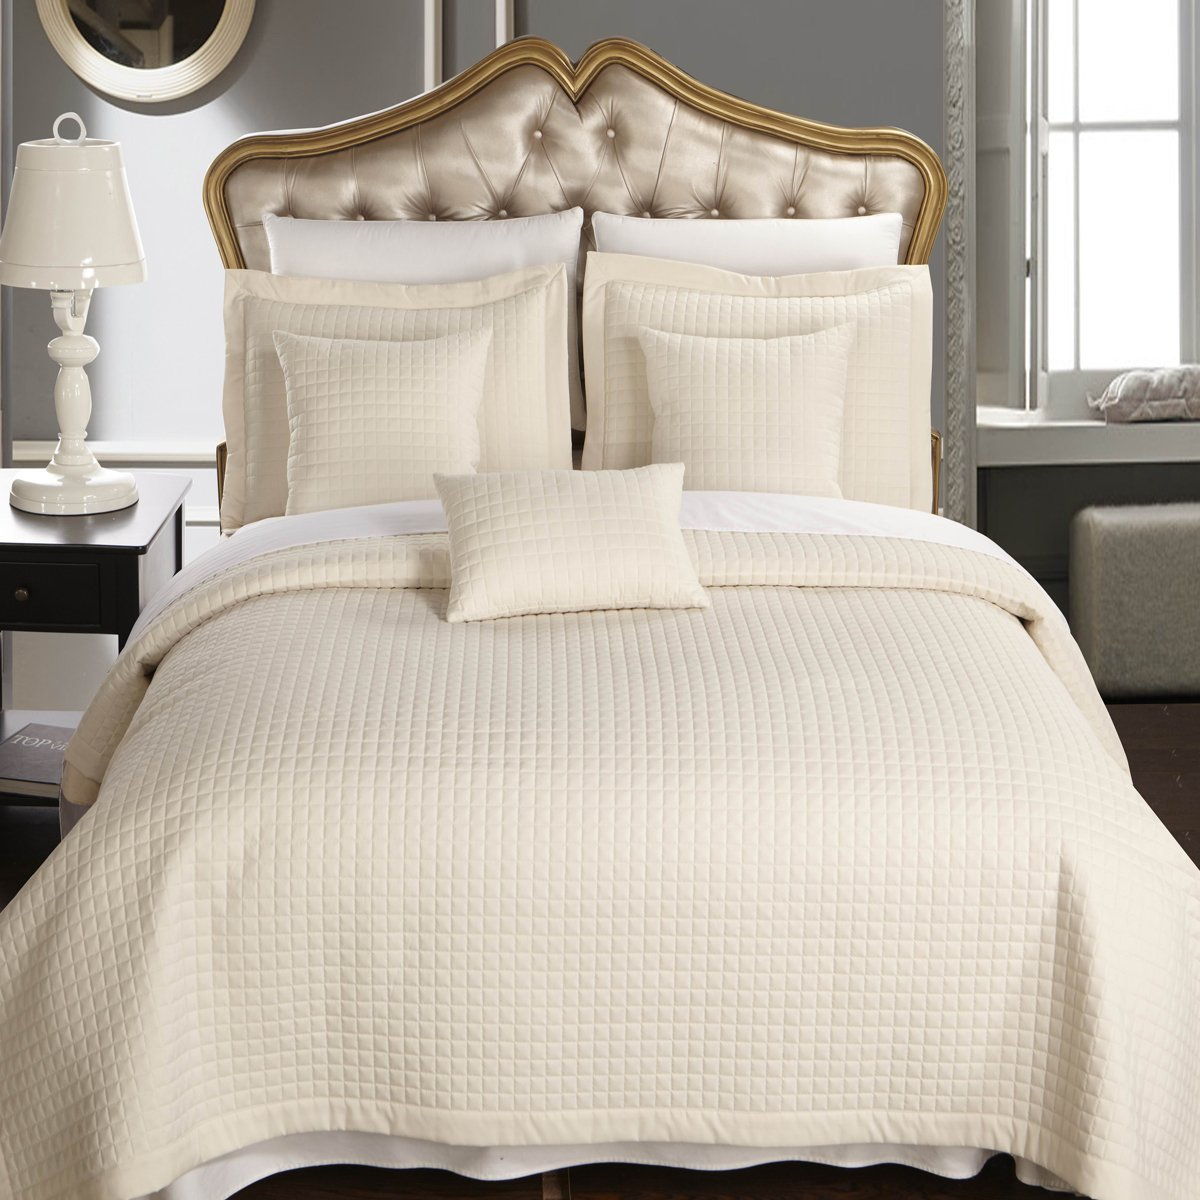 Full size Ivory Coverlet 6pc set, Luxury Microfiber Checkered Quilt and Pillows by Royal Hotel